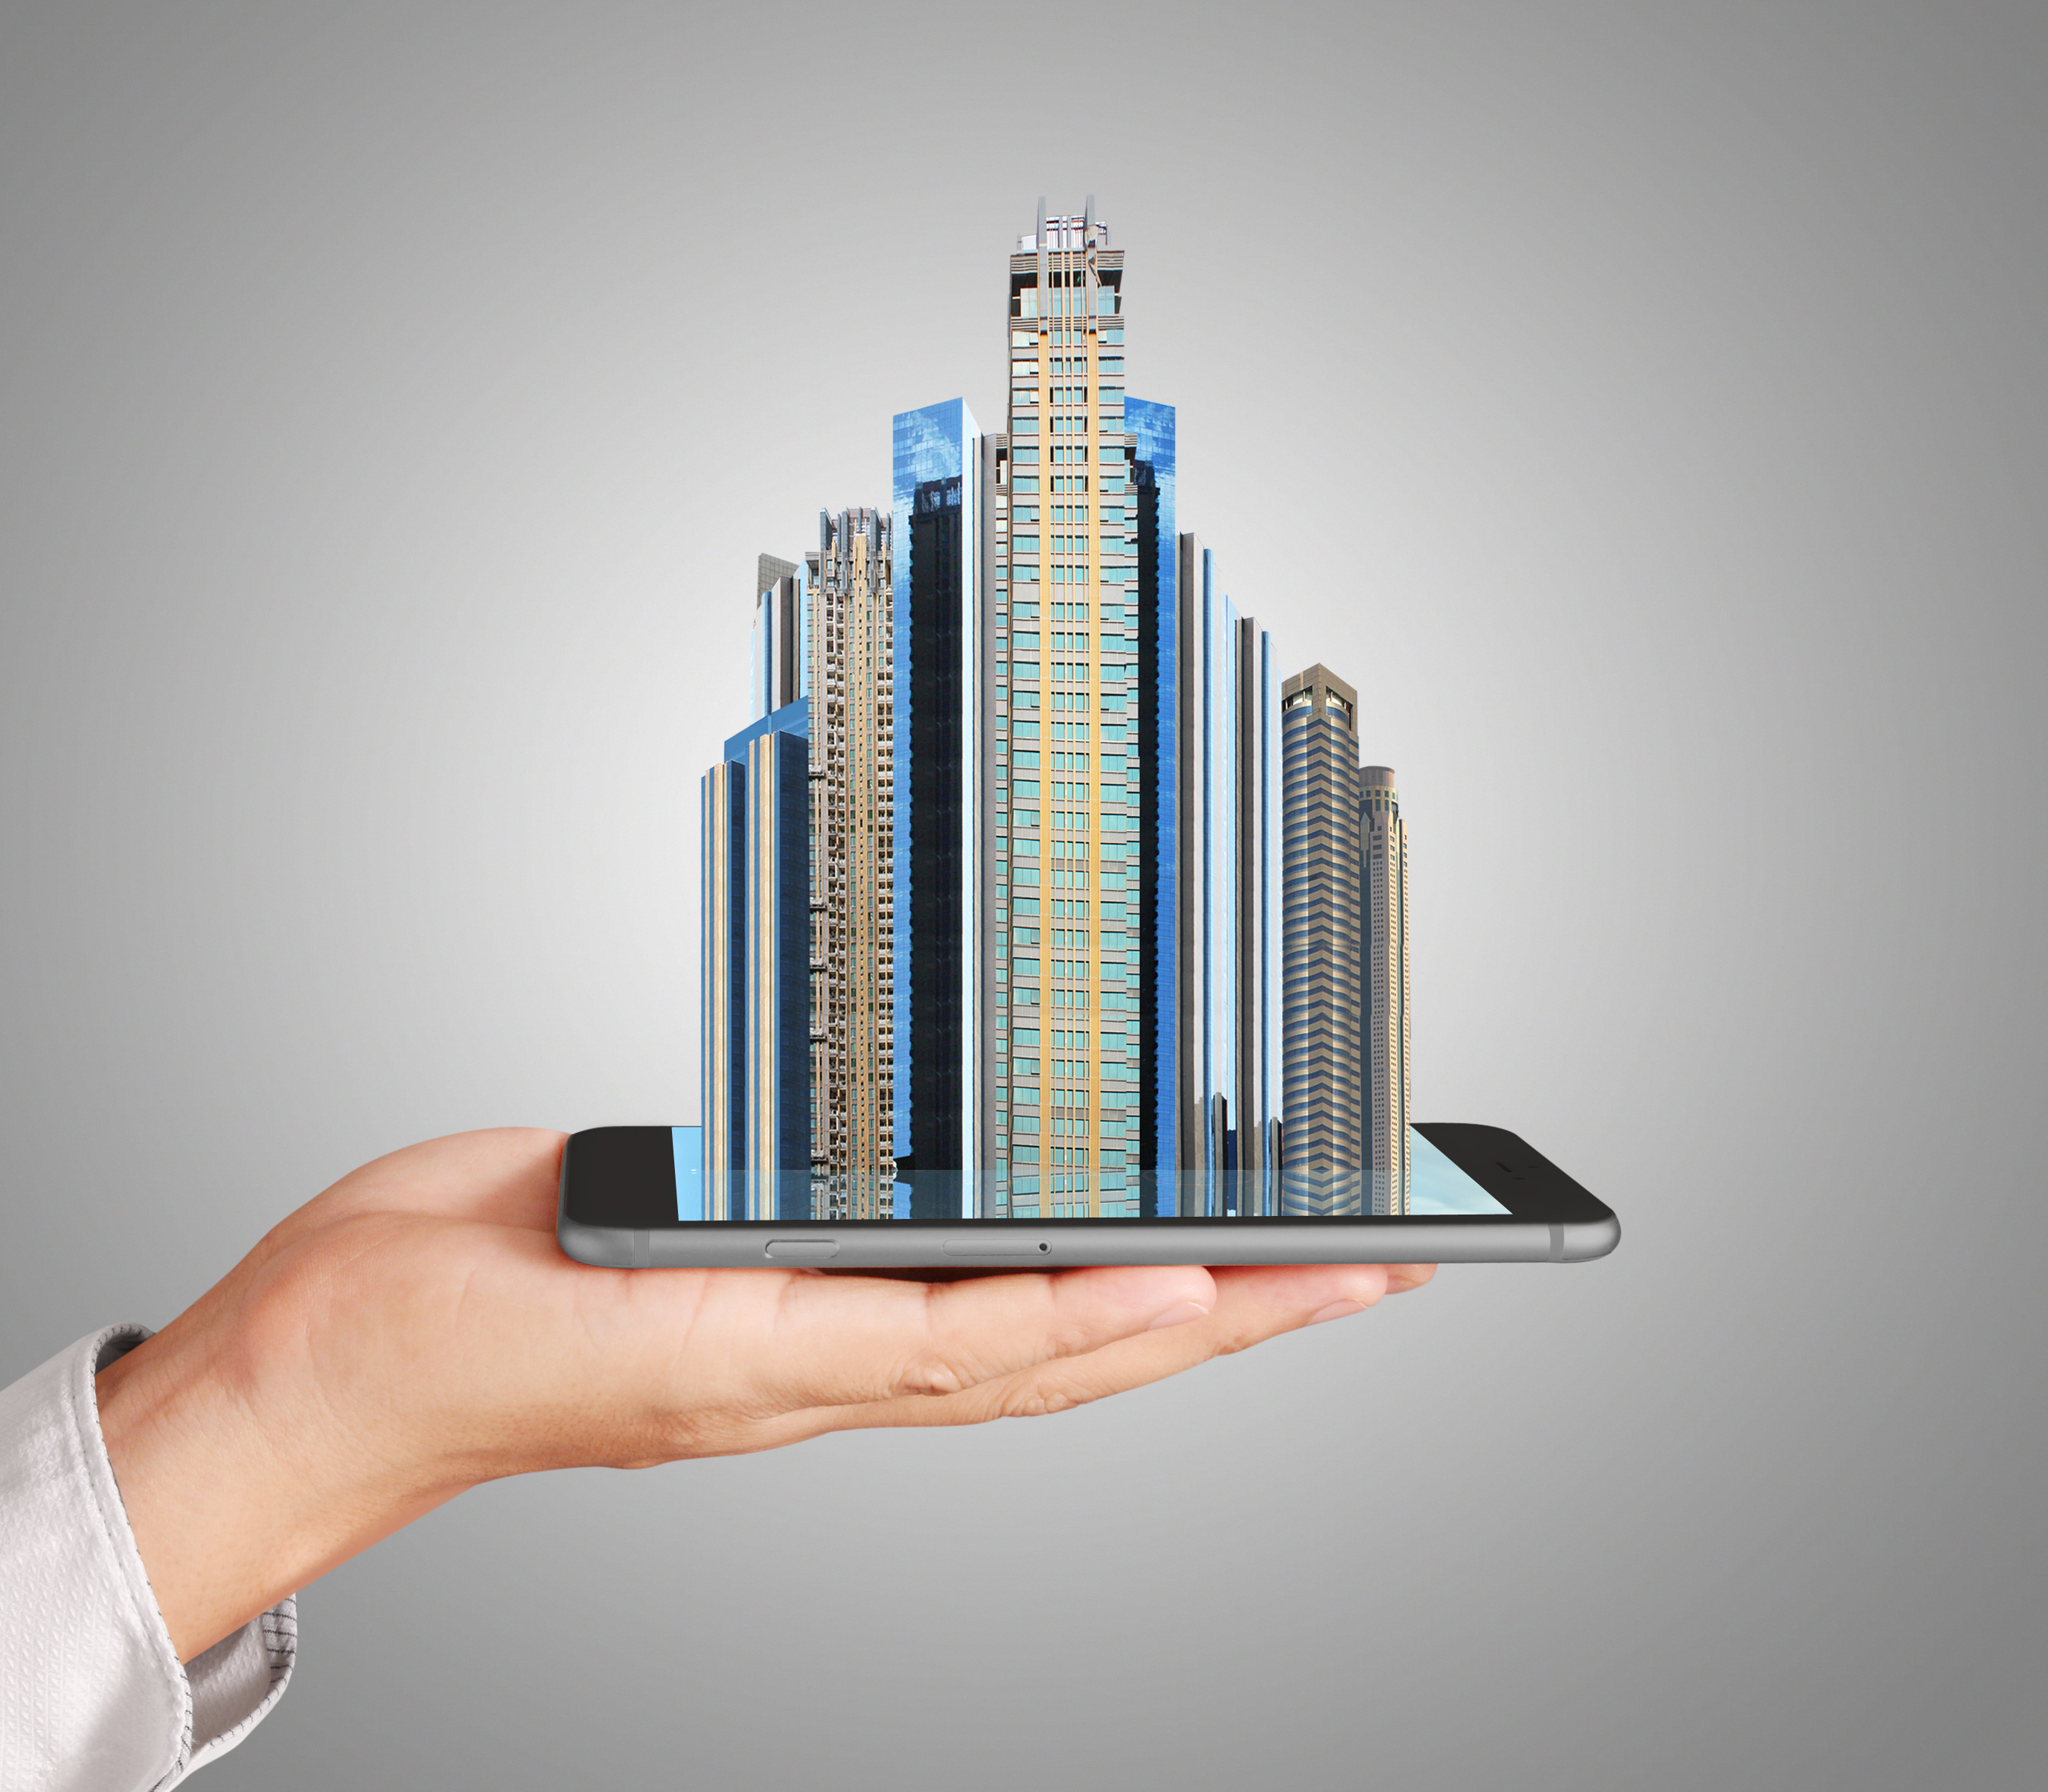 Crexi raises $11 million to bring commercial real estate out of the Dark Ages